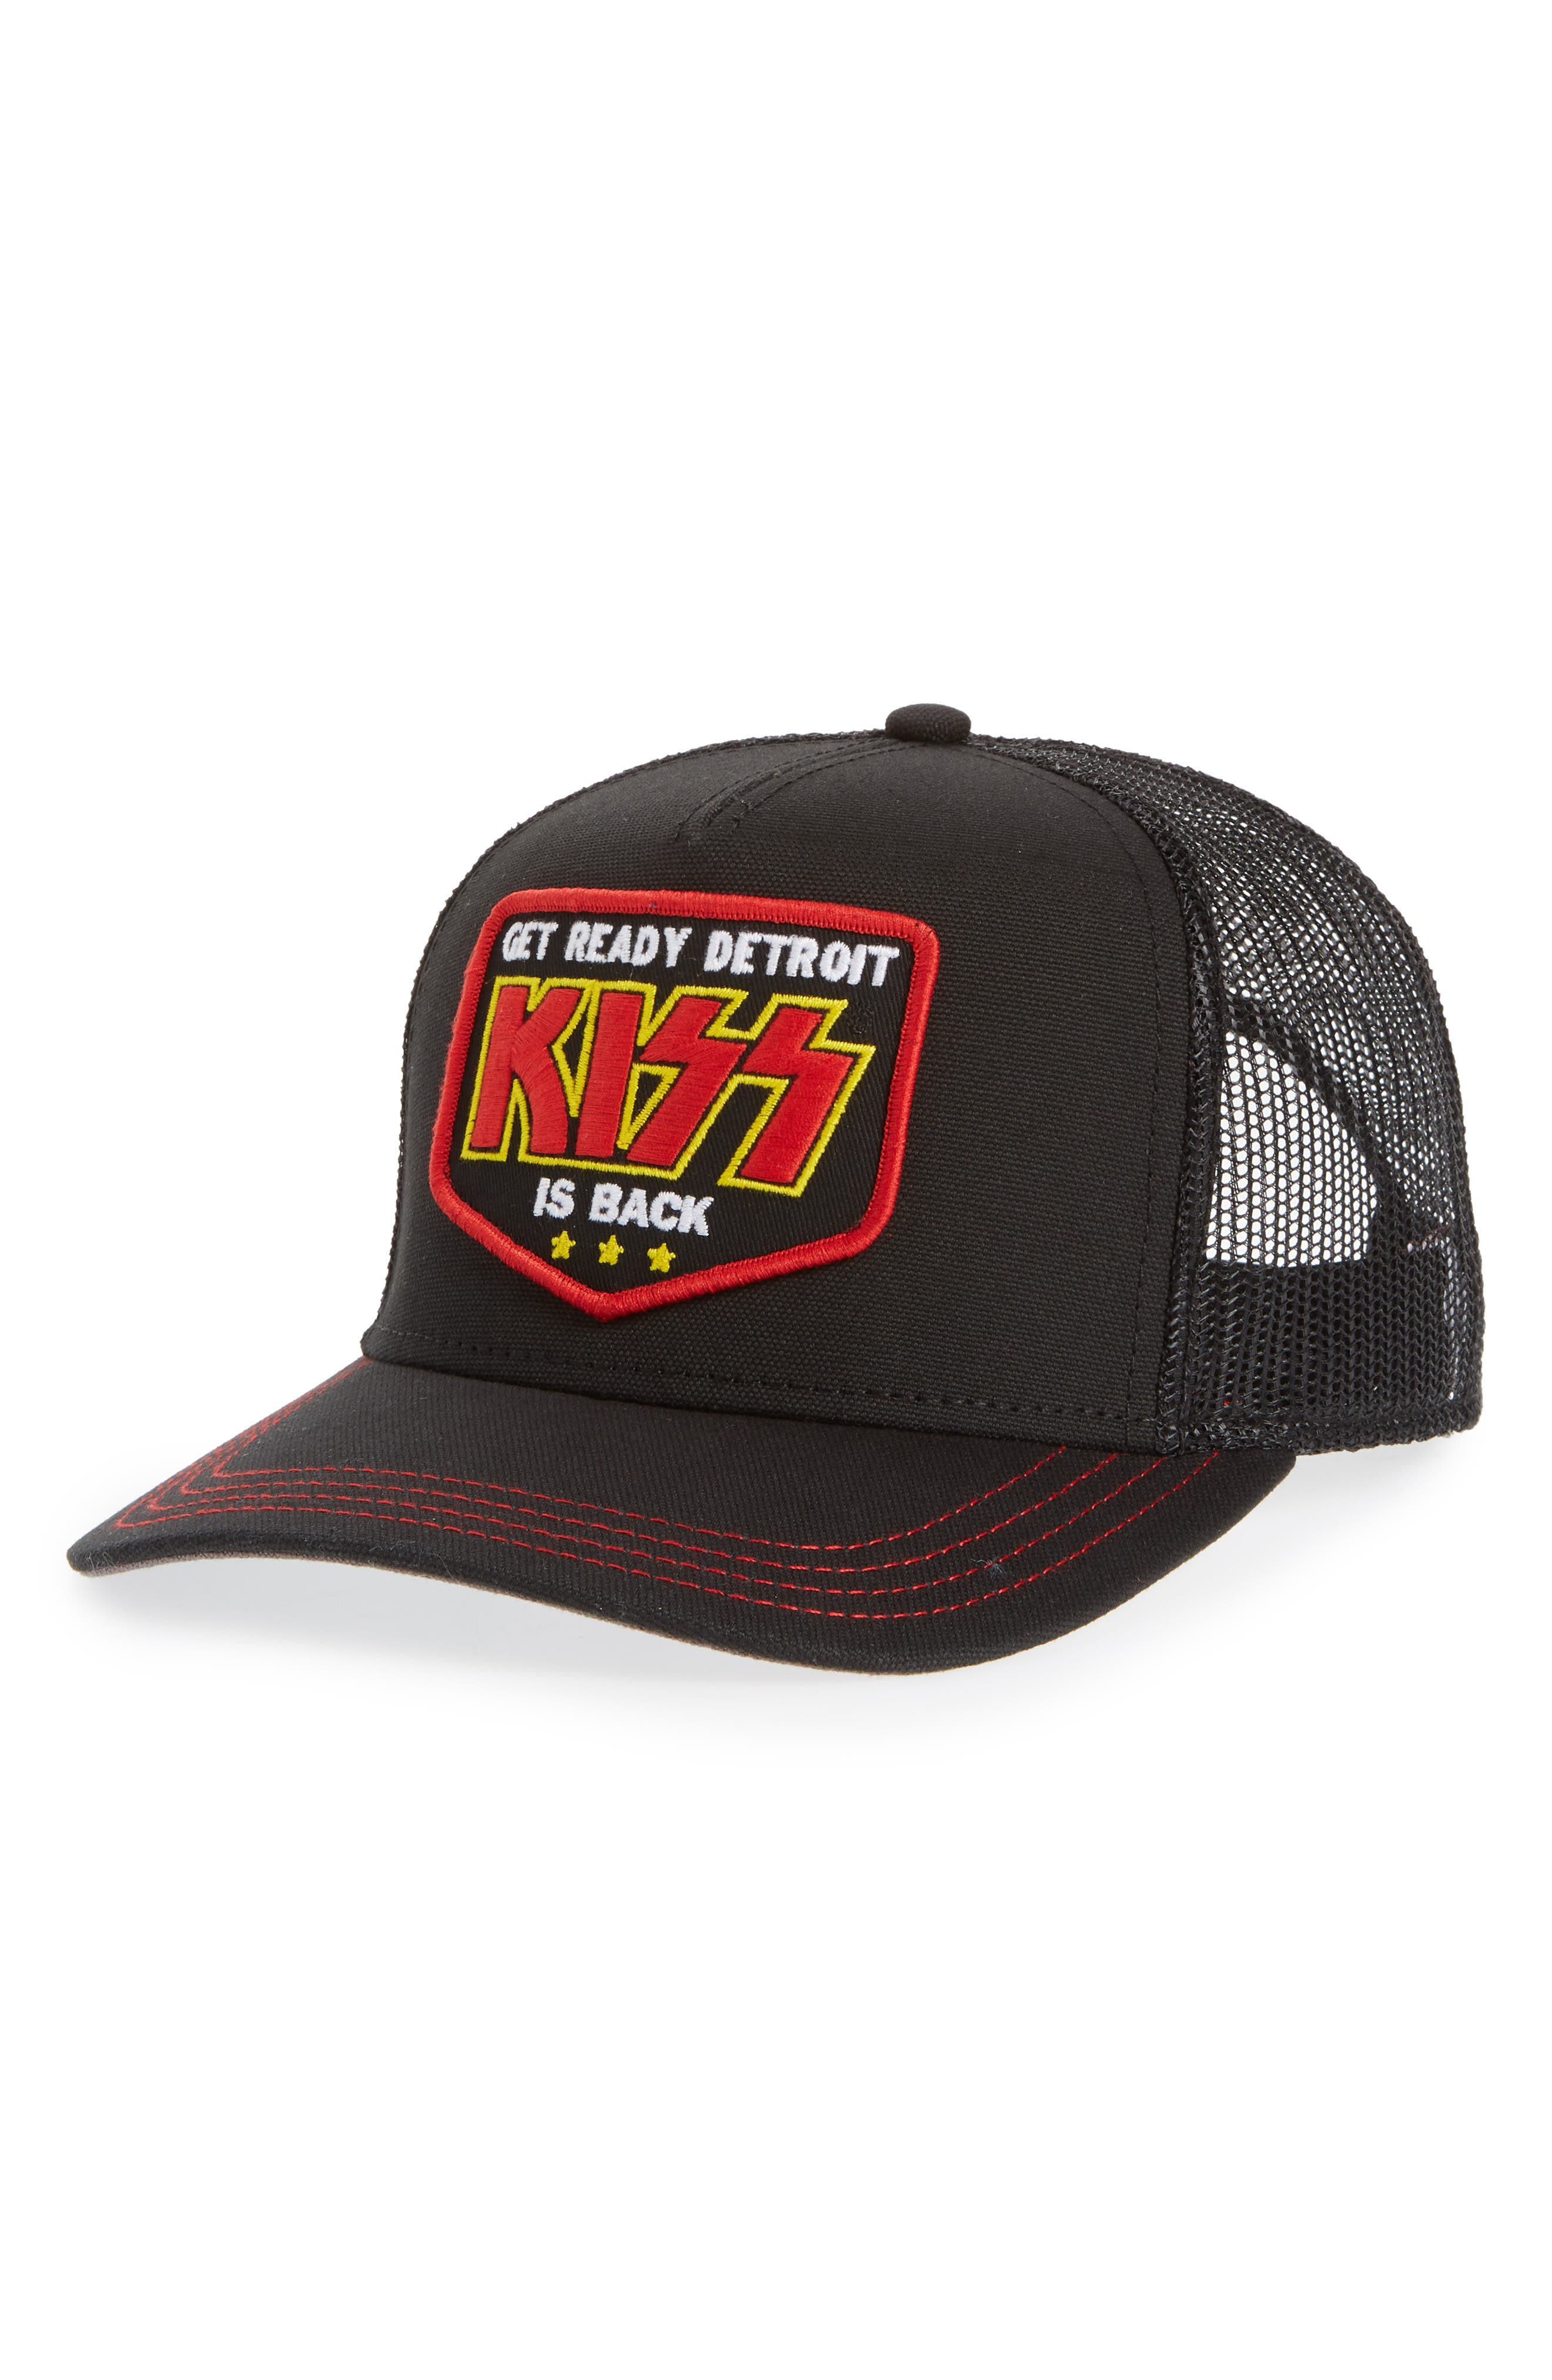 Valin KISS Trucker Hat,                         Main,                         color, Black